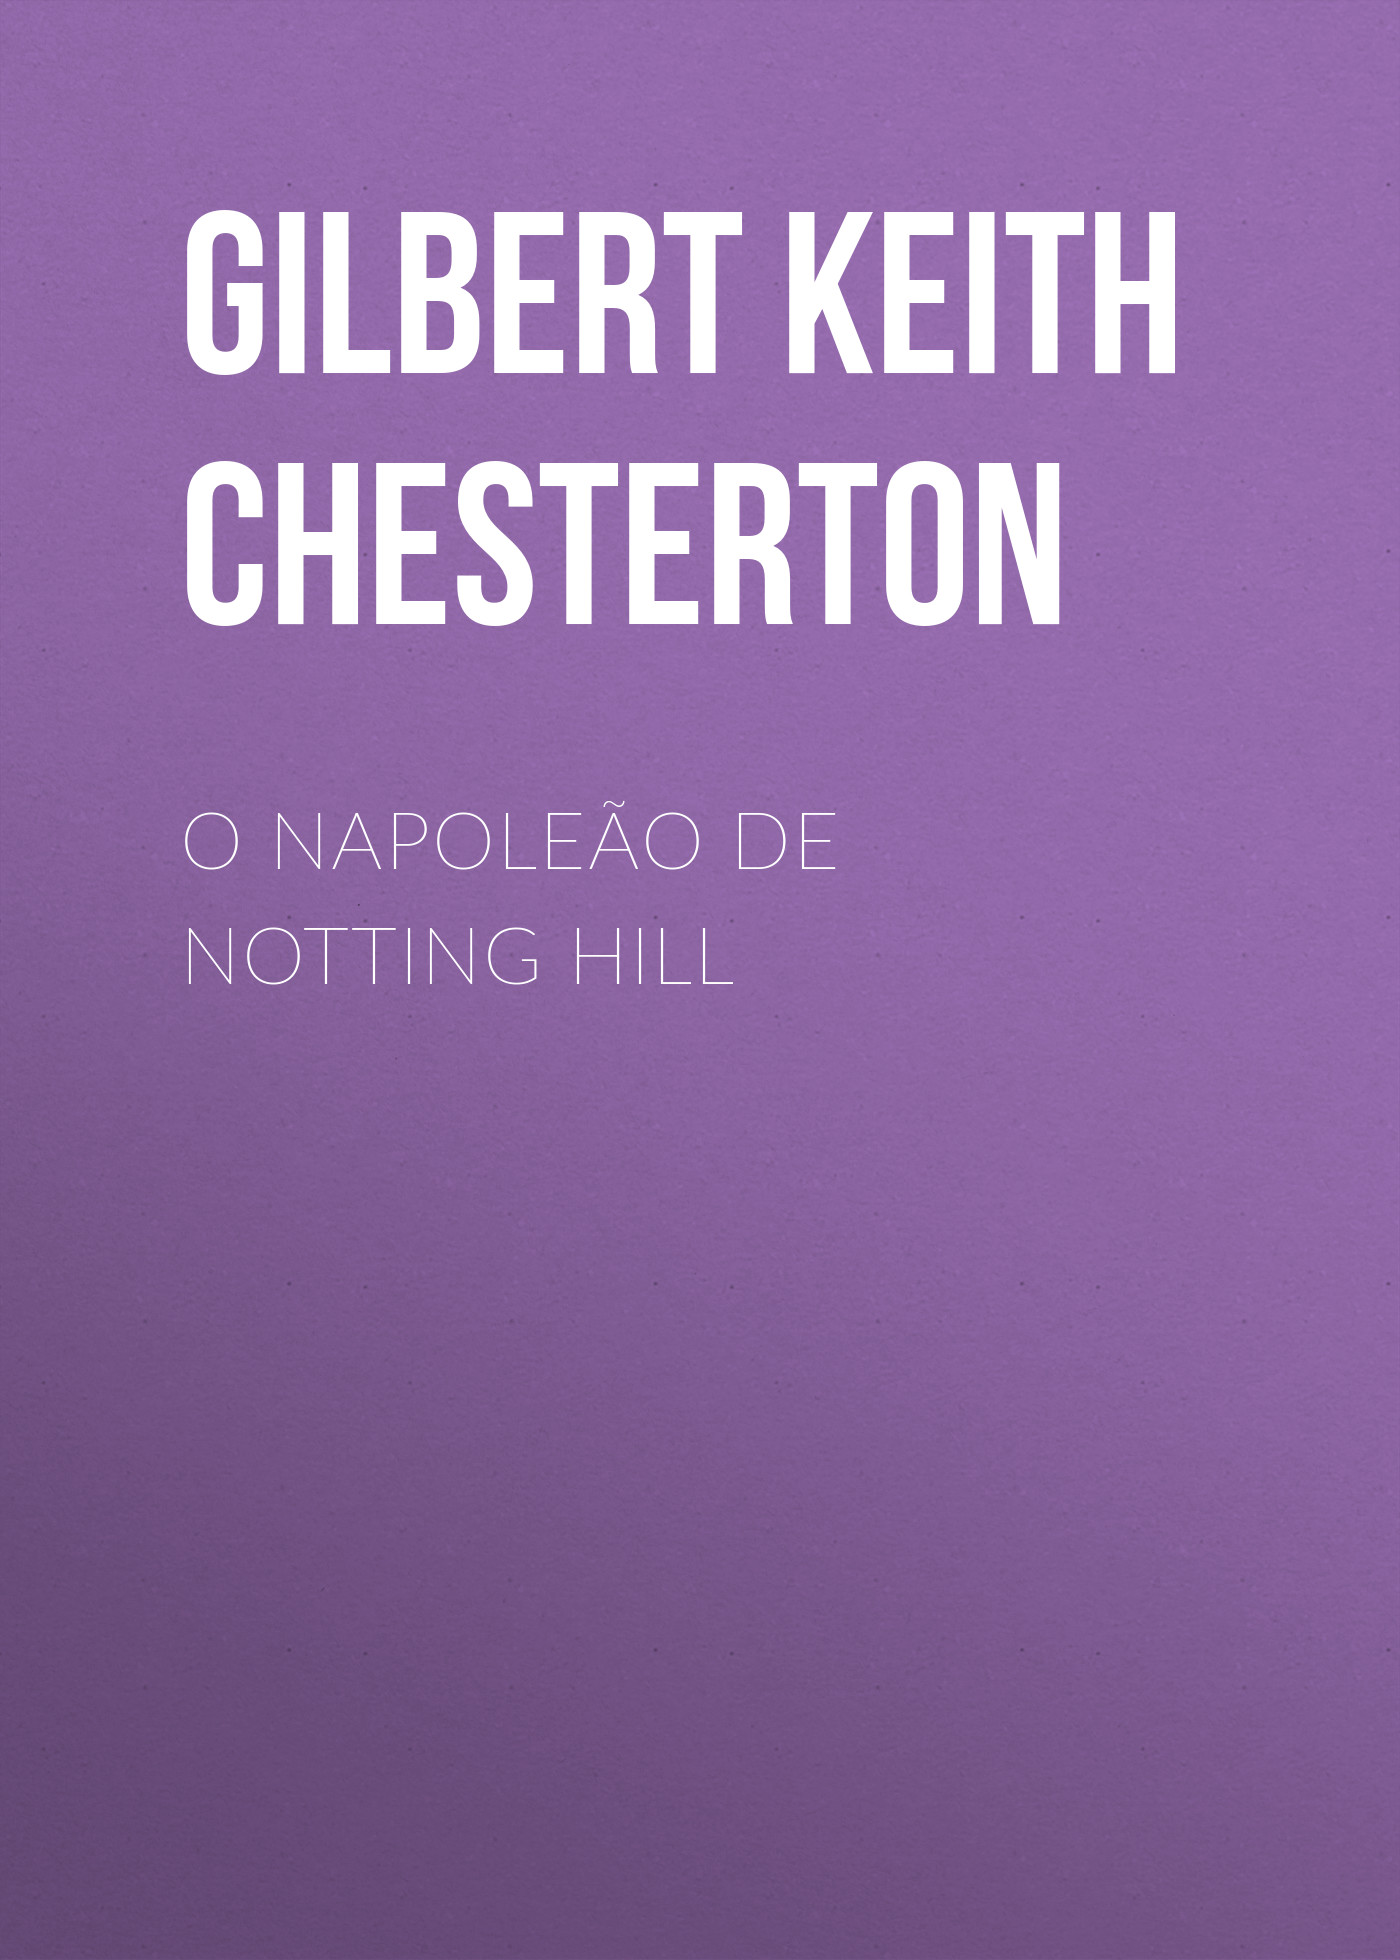 Gilbert Keith Chesterton O Napoleão de Notting Hill гилберт о салливан gilbert o sullivan stranger in my own back yard